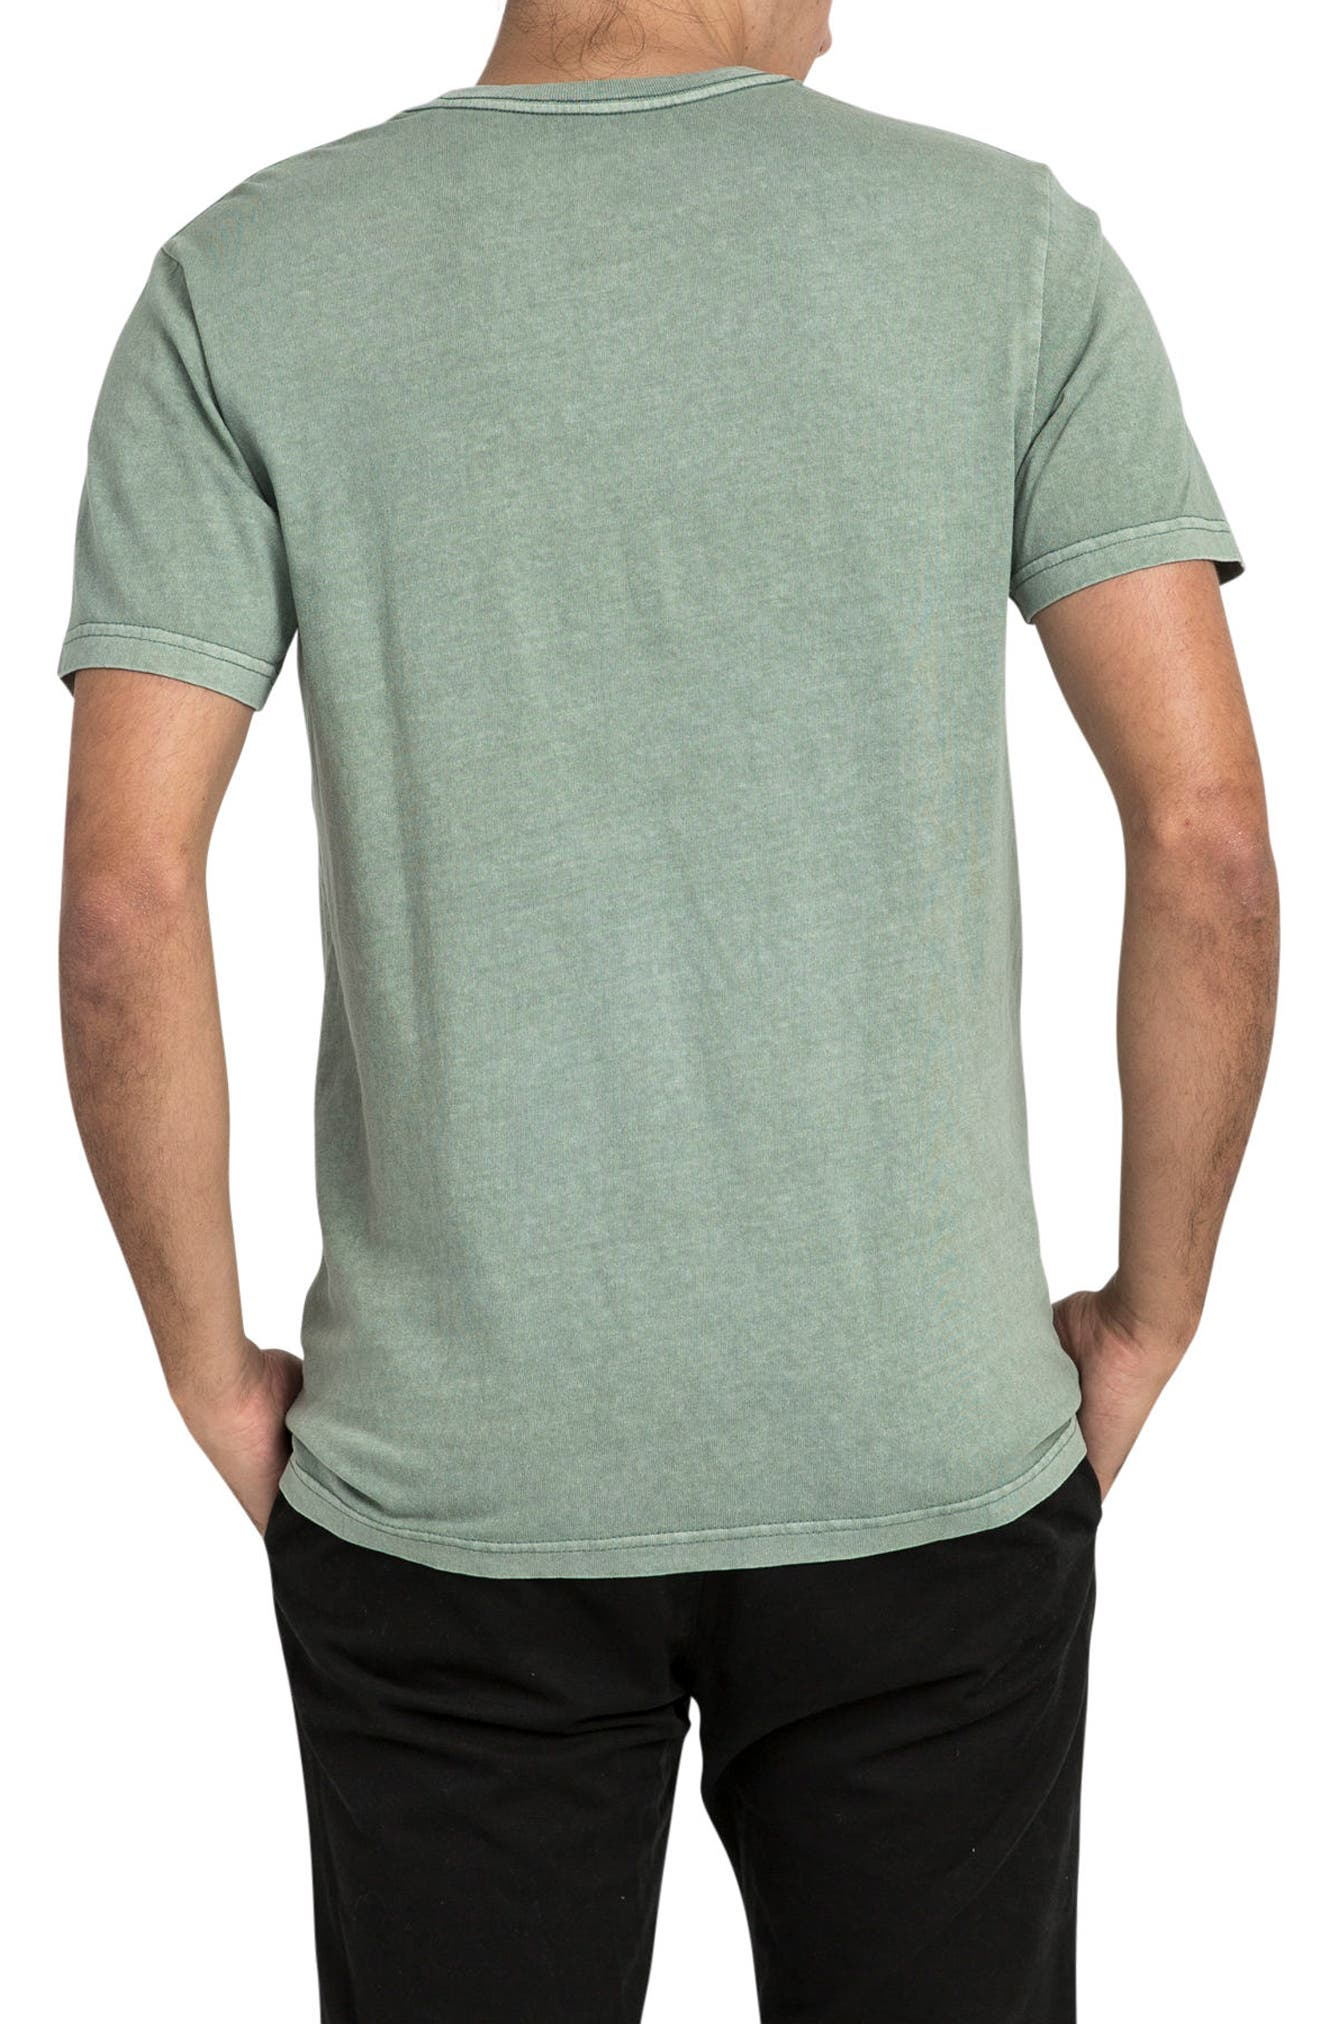 Flip Box Graphic T-Shirt,                             Alternate thumbnail 2, color,                             351